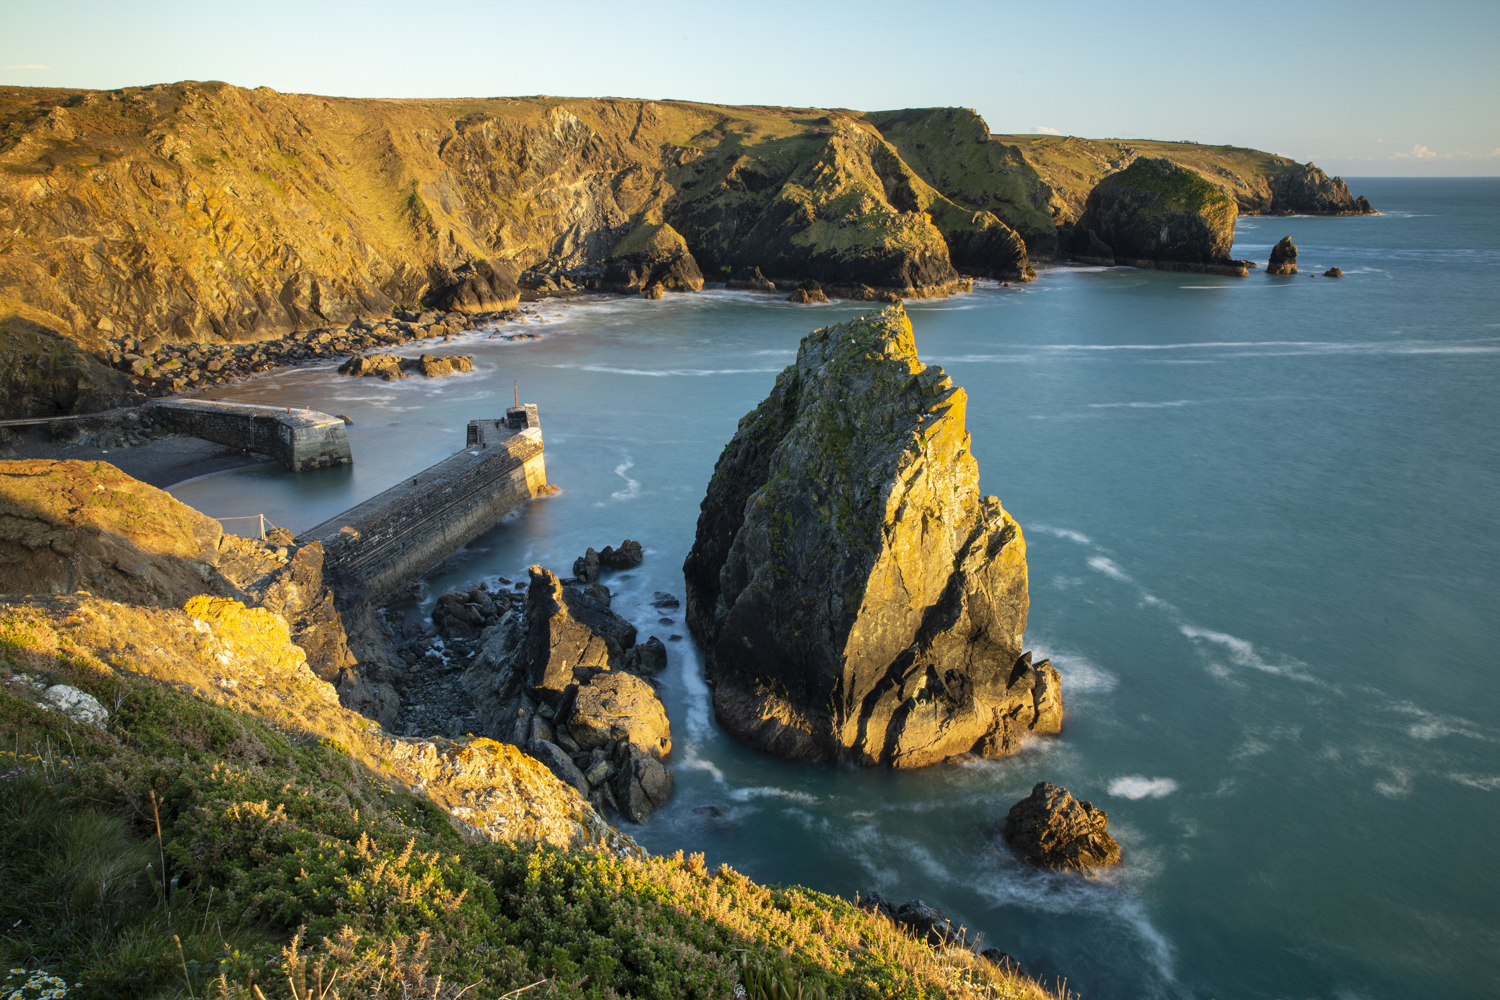 seaside cliffs and rocks in summer landscape photography